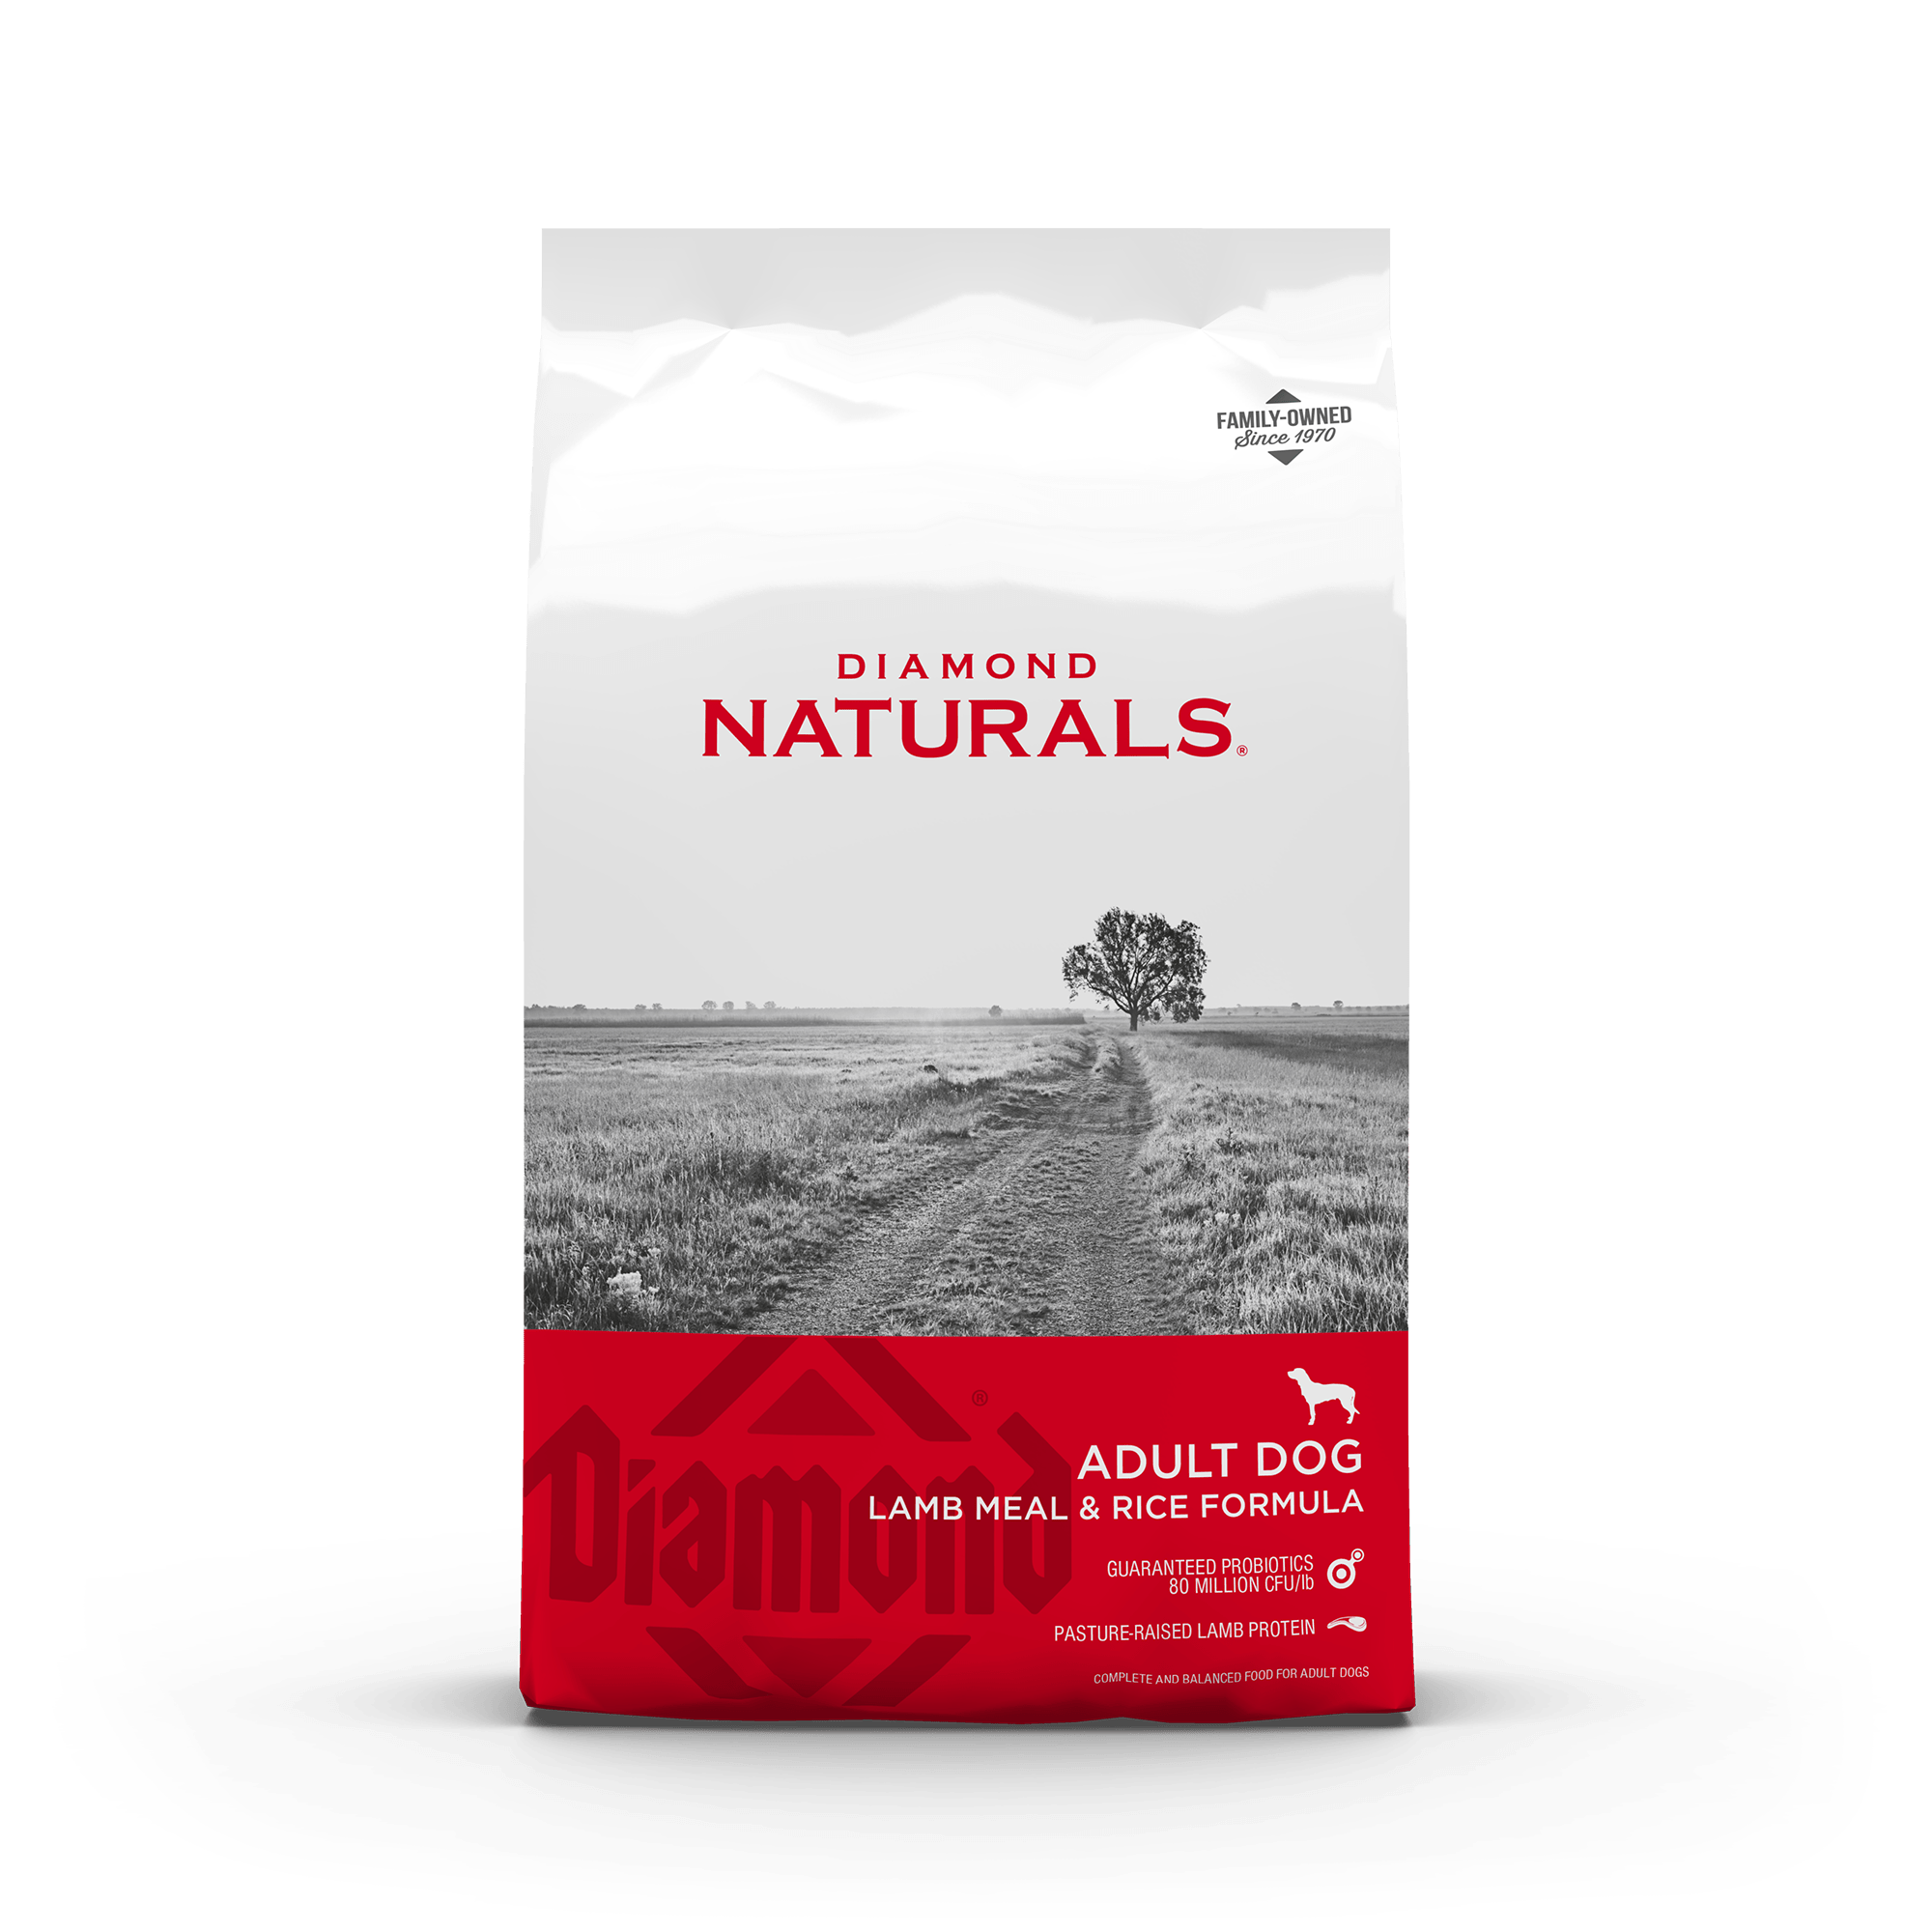 Adult Dog Lamb Meal & Rice product packaging